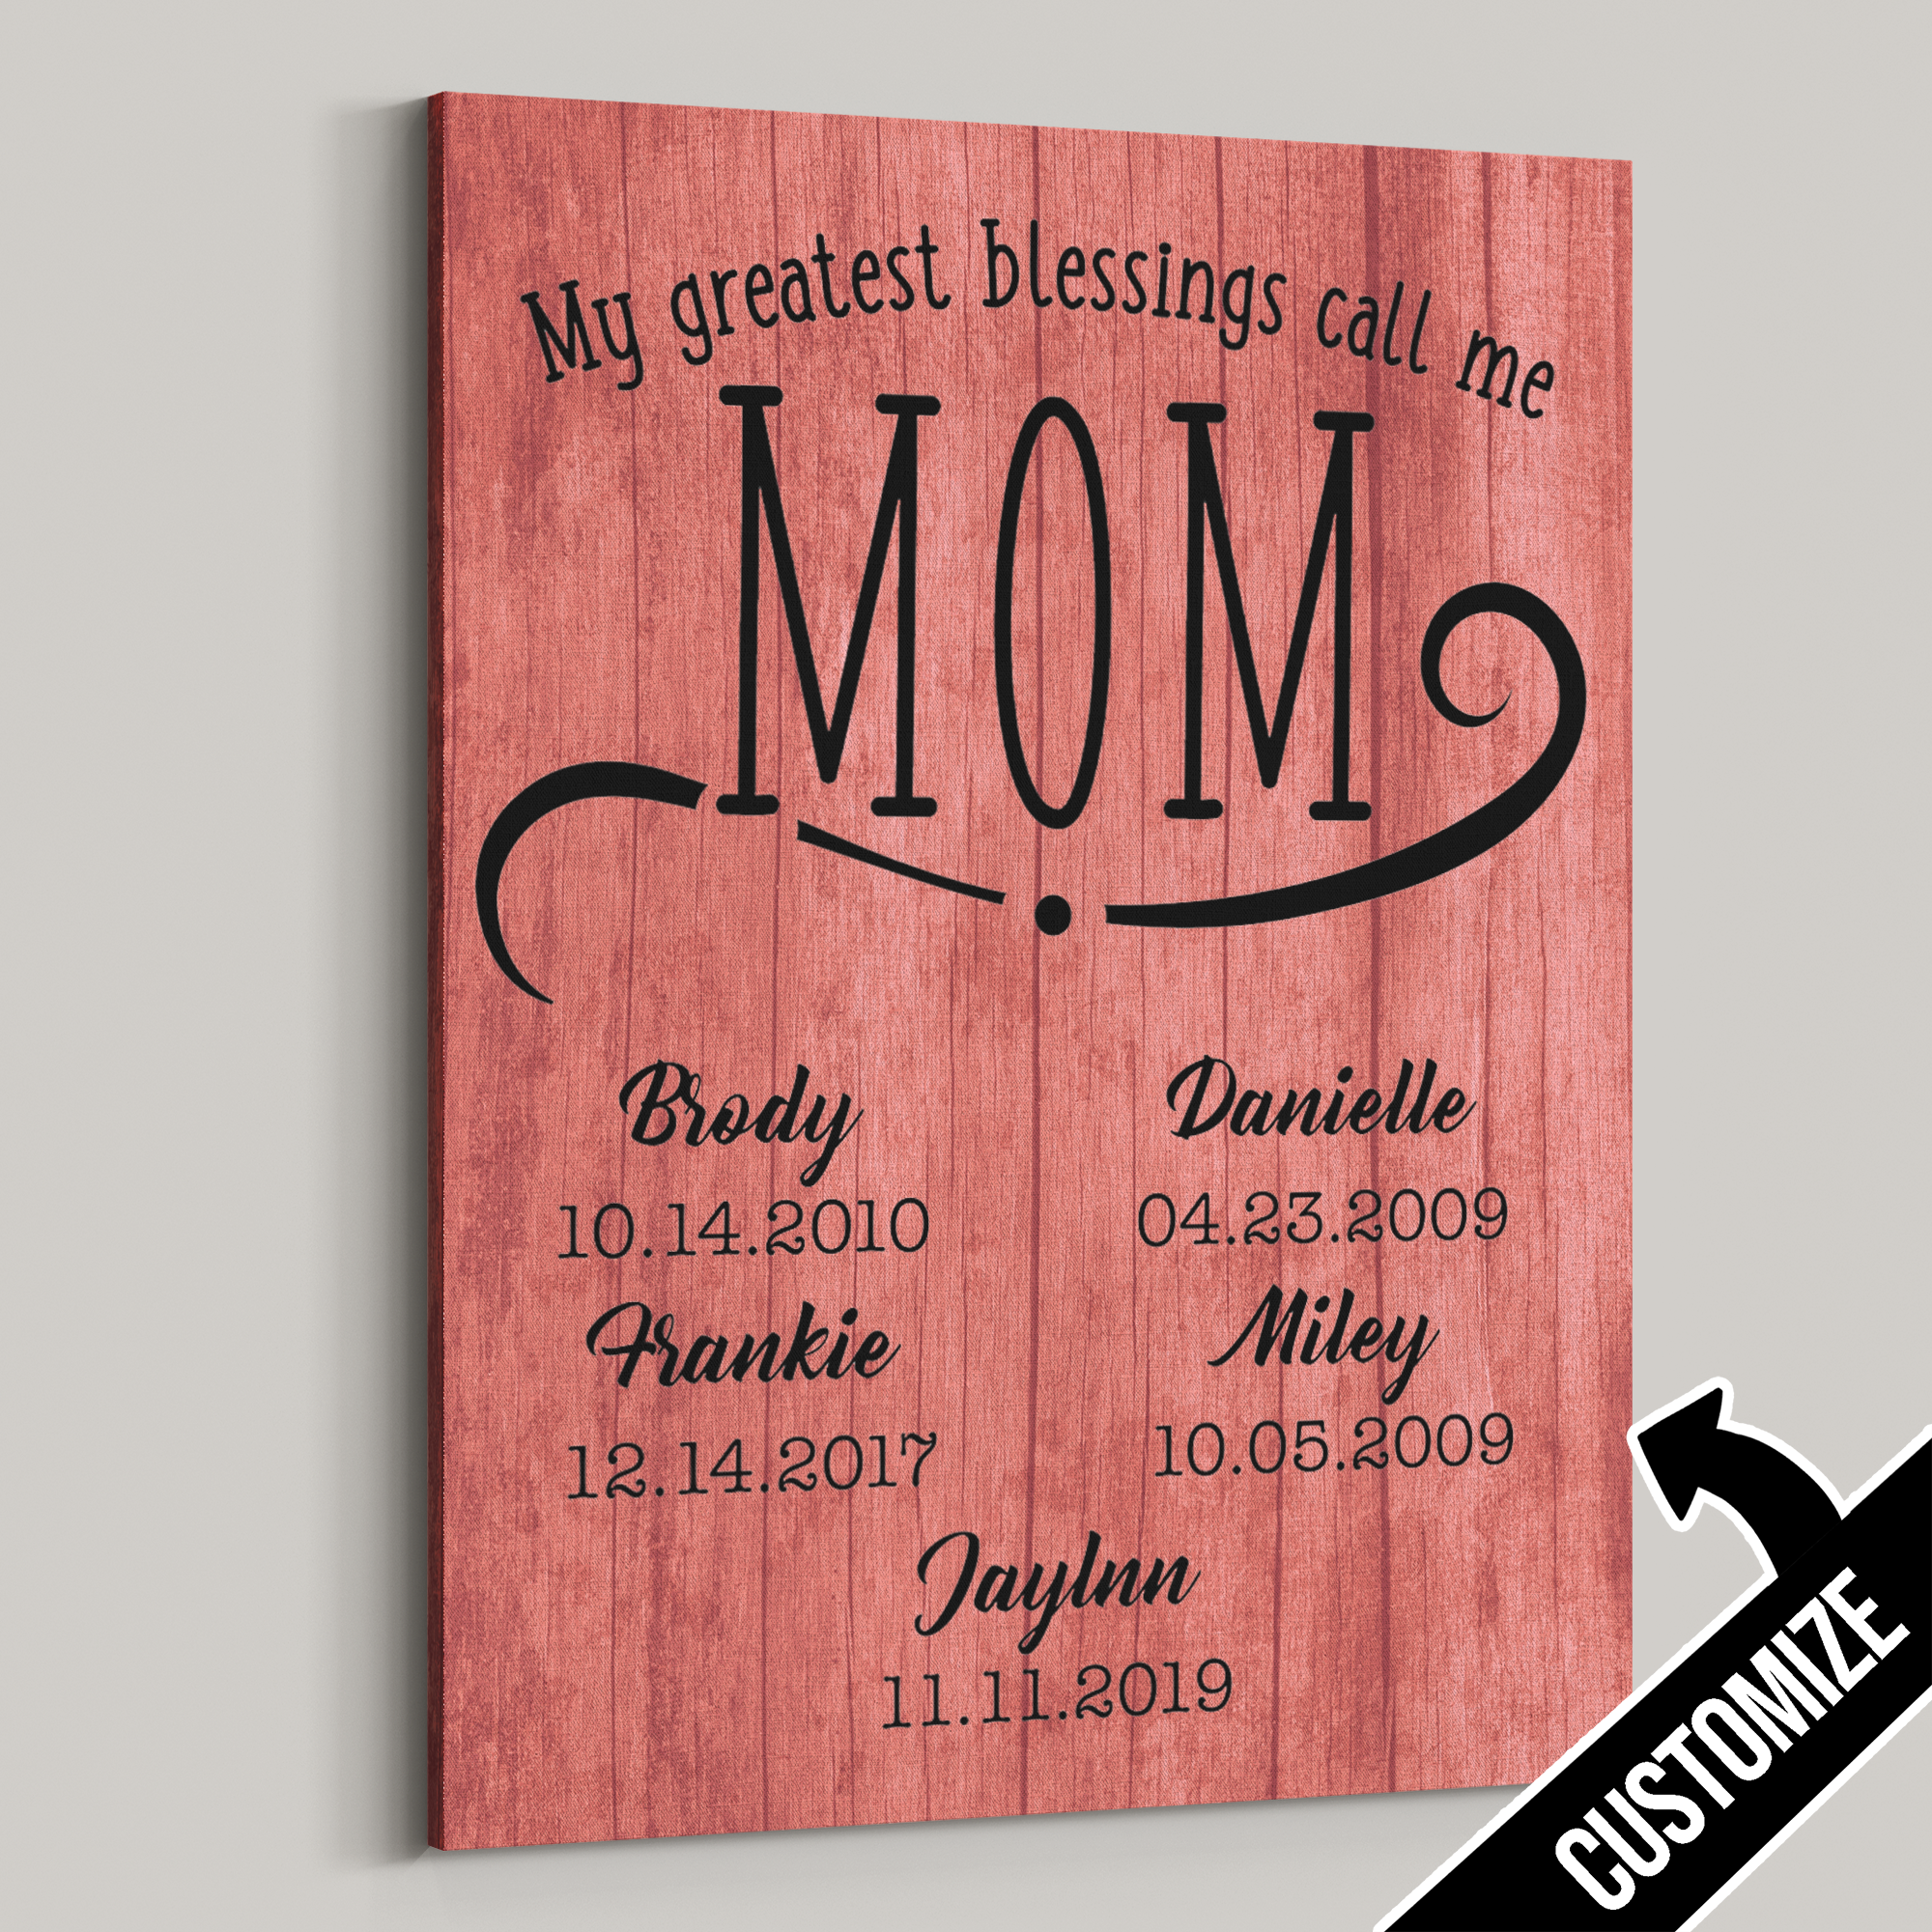 My Greatest Blessings Call Me Mom Rustic Split Canvas - Patriot Republic